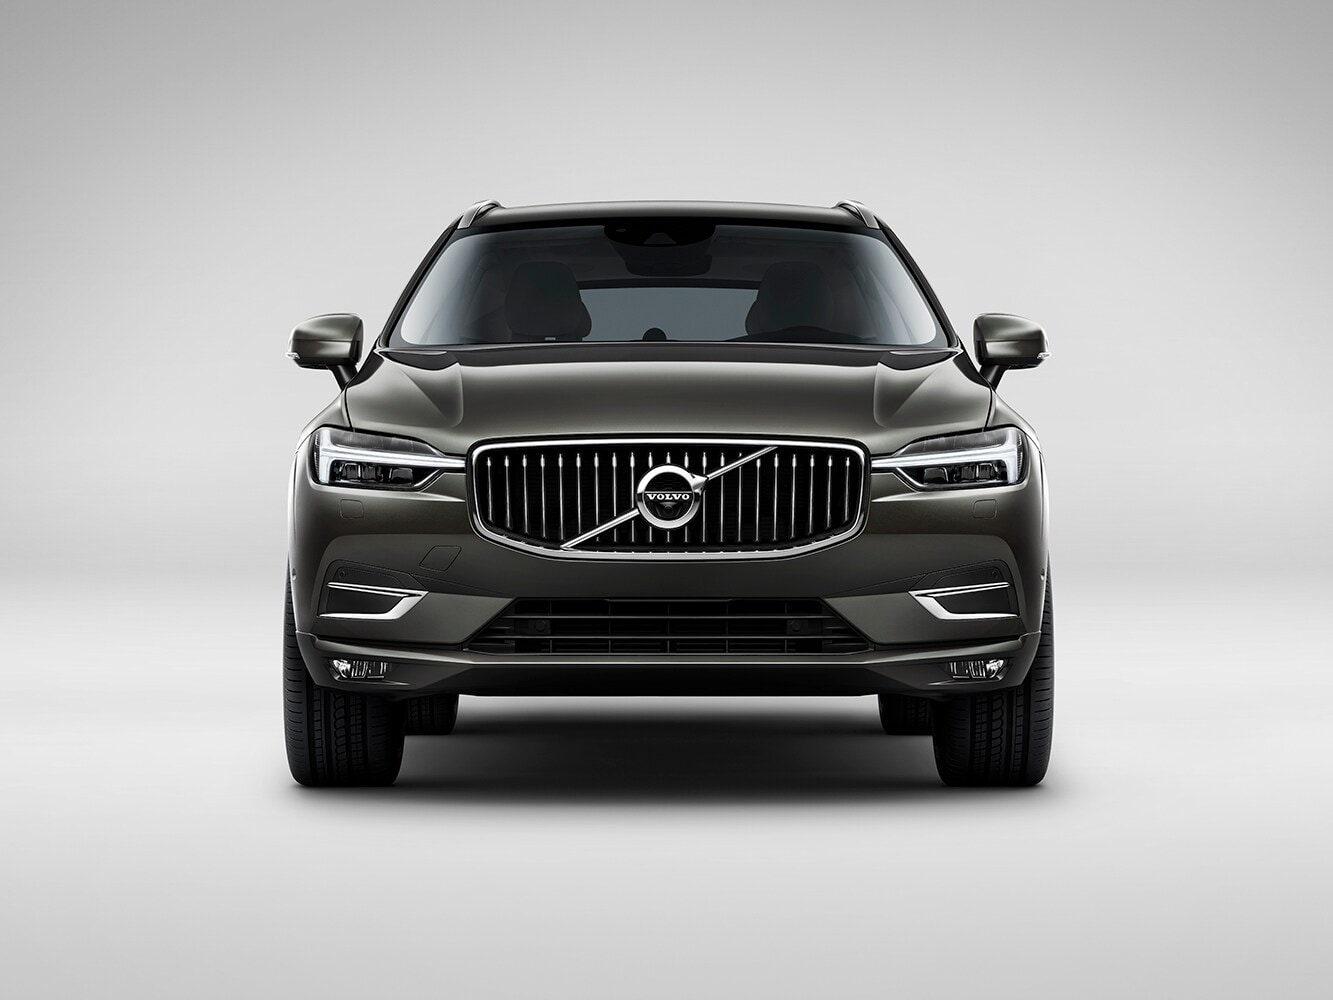 Vista frontal Volvo XC60 Inscription